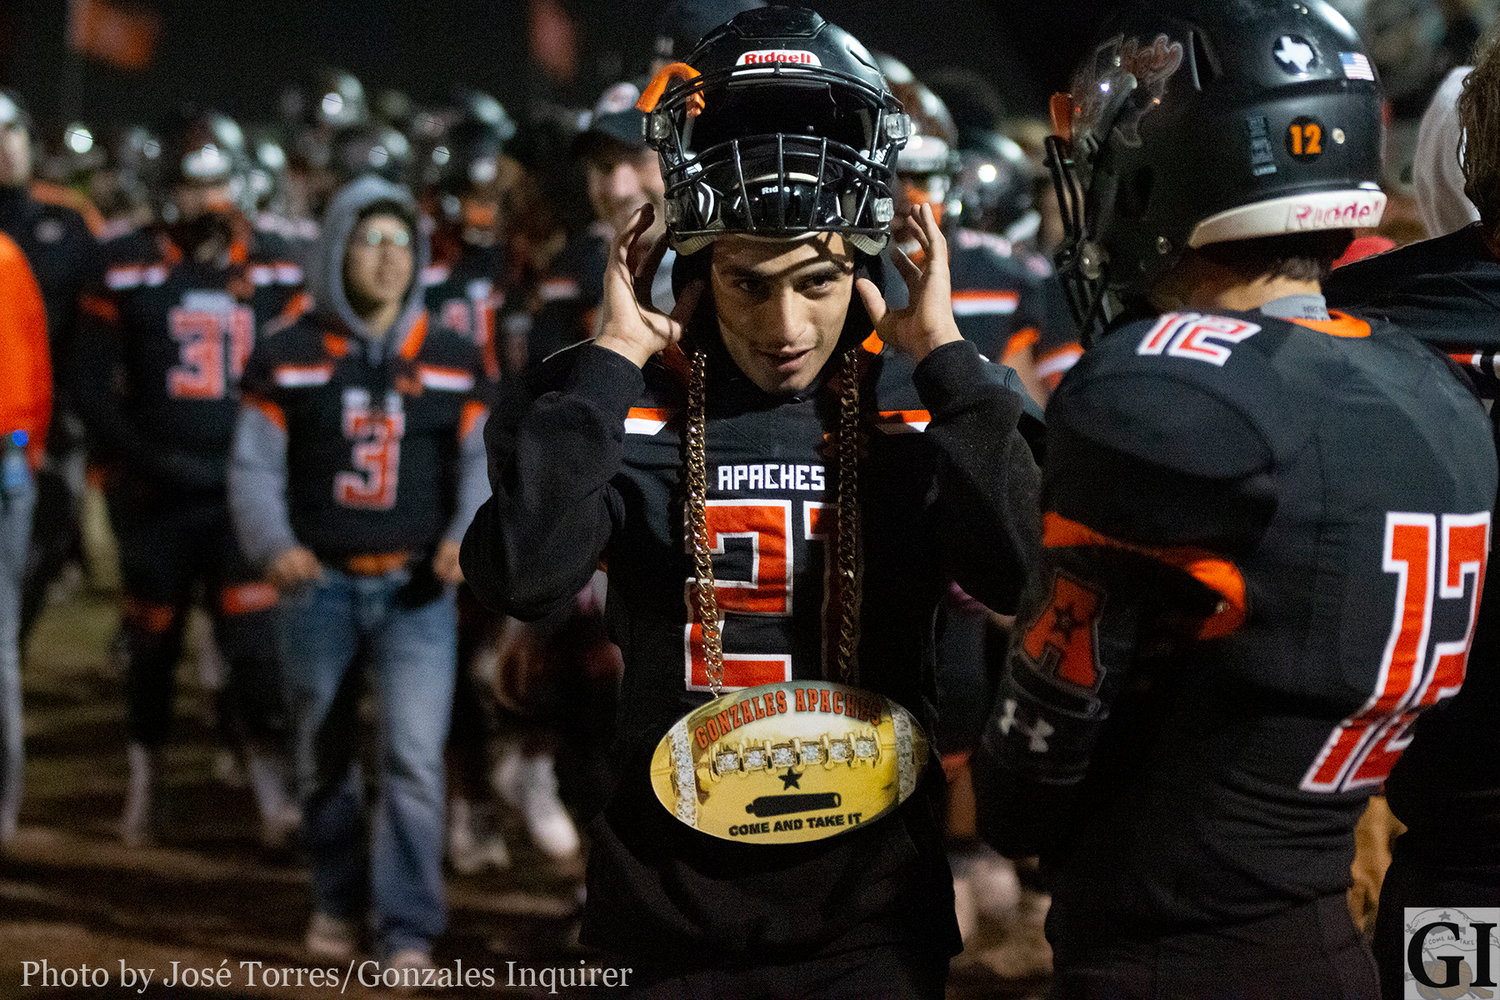 The turnover chain had to be passed around a bit as the Apaches defense played tough against the Boerne Greyhounds. Domingo Garcia (21) let's his chain hang low in Gonzales' 35-28 win.